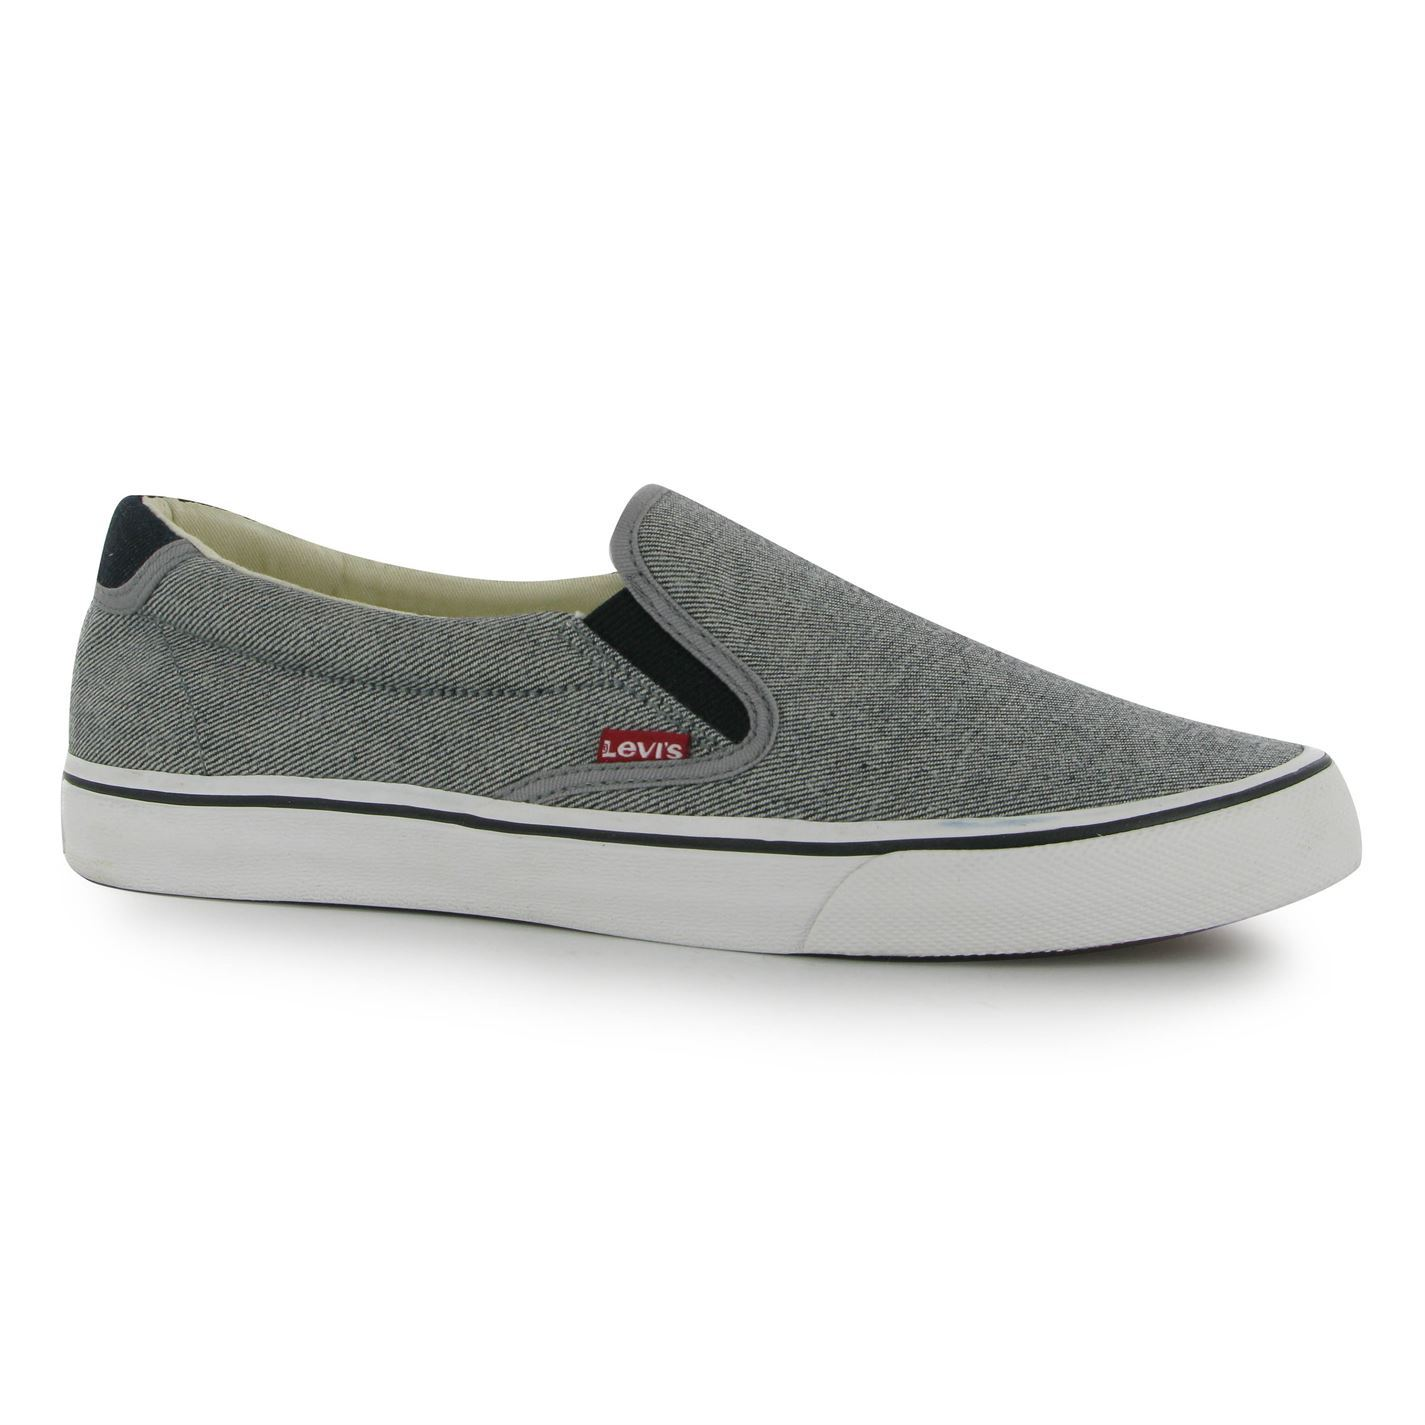 levis tab slip on canvas shoes mens gents ebay